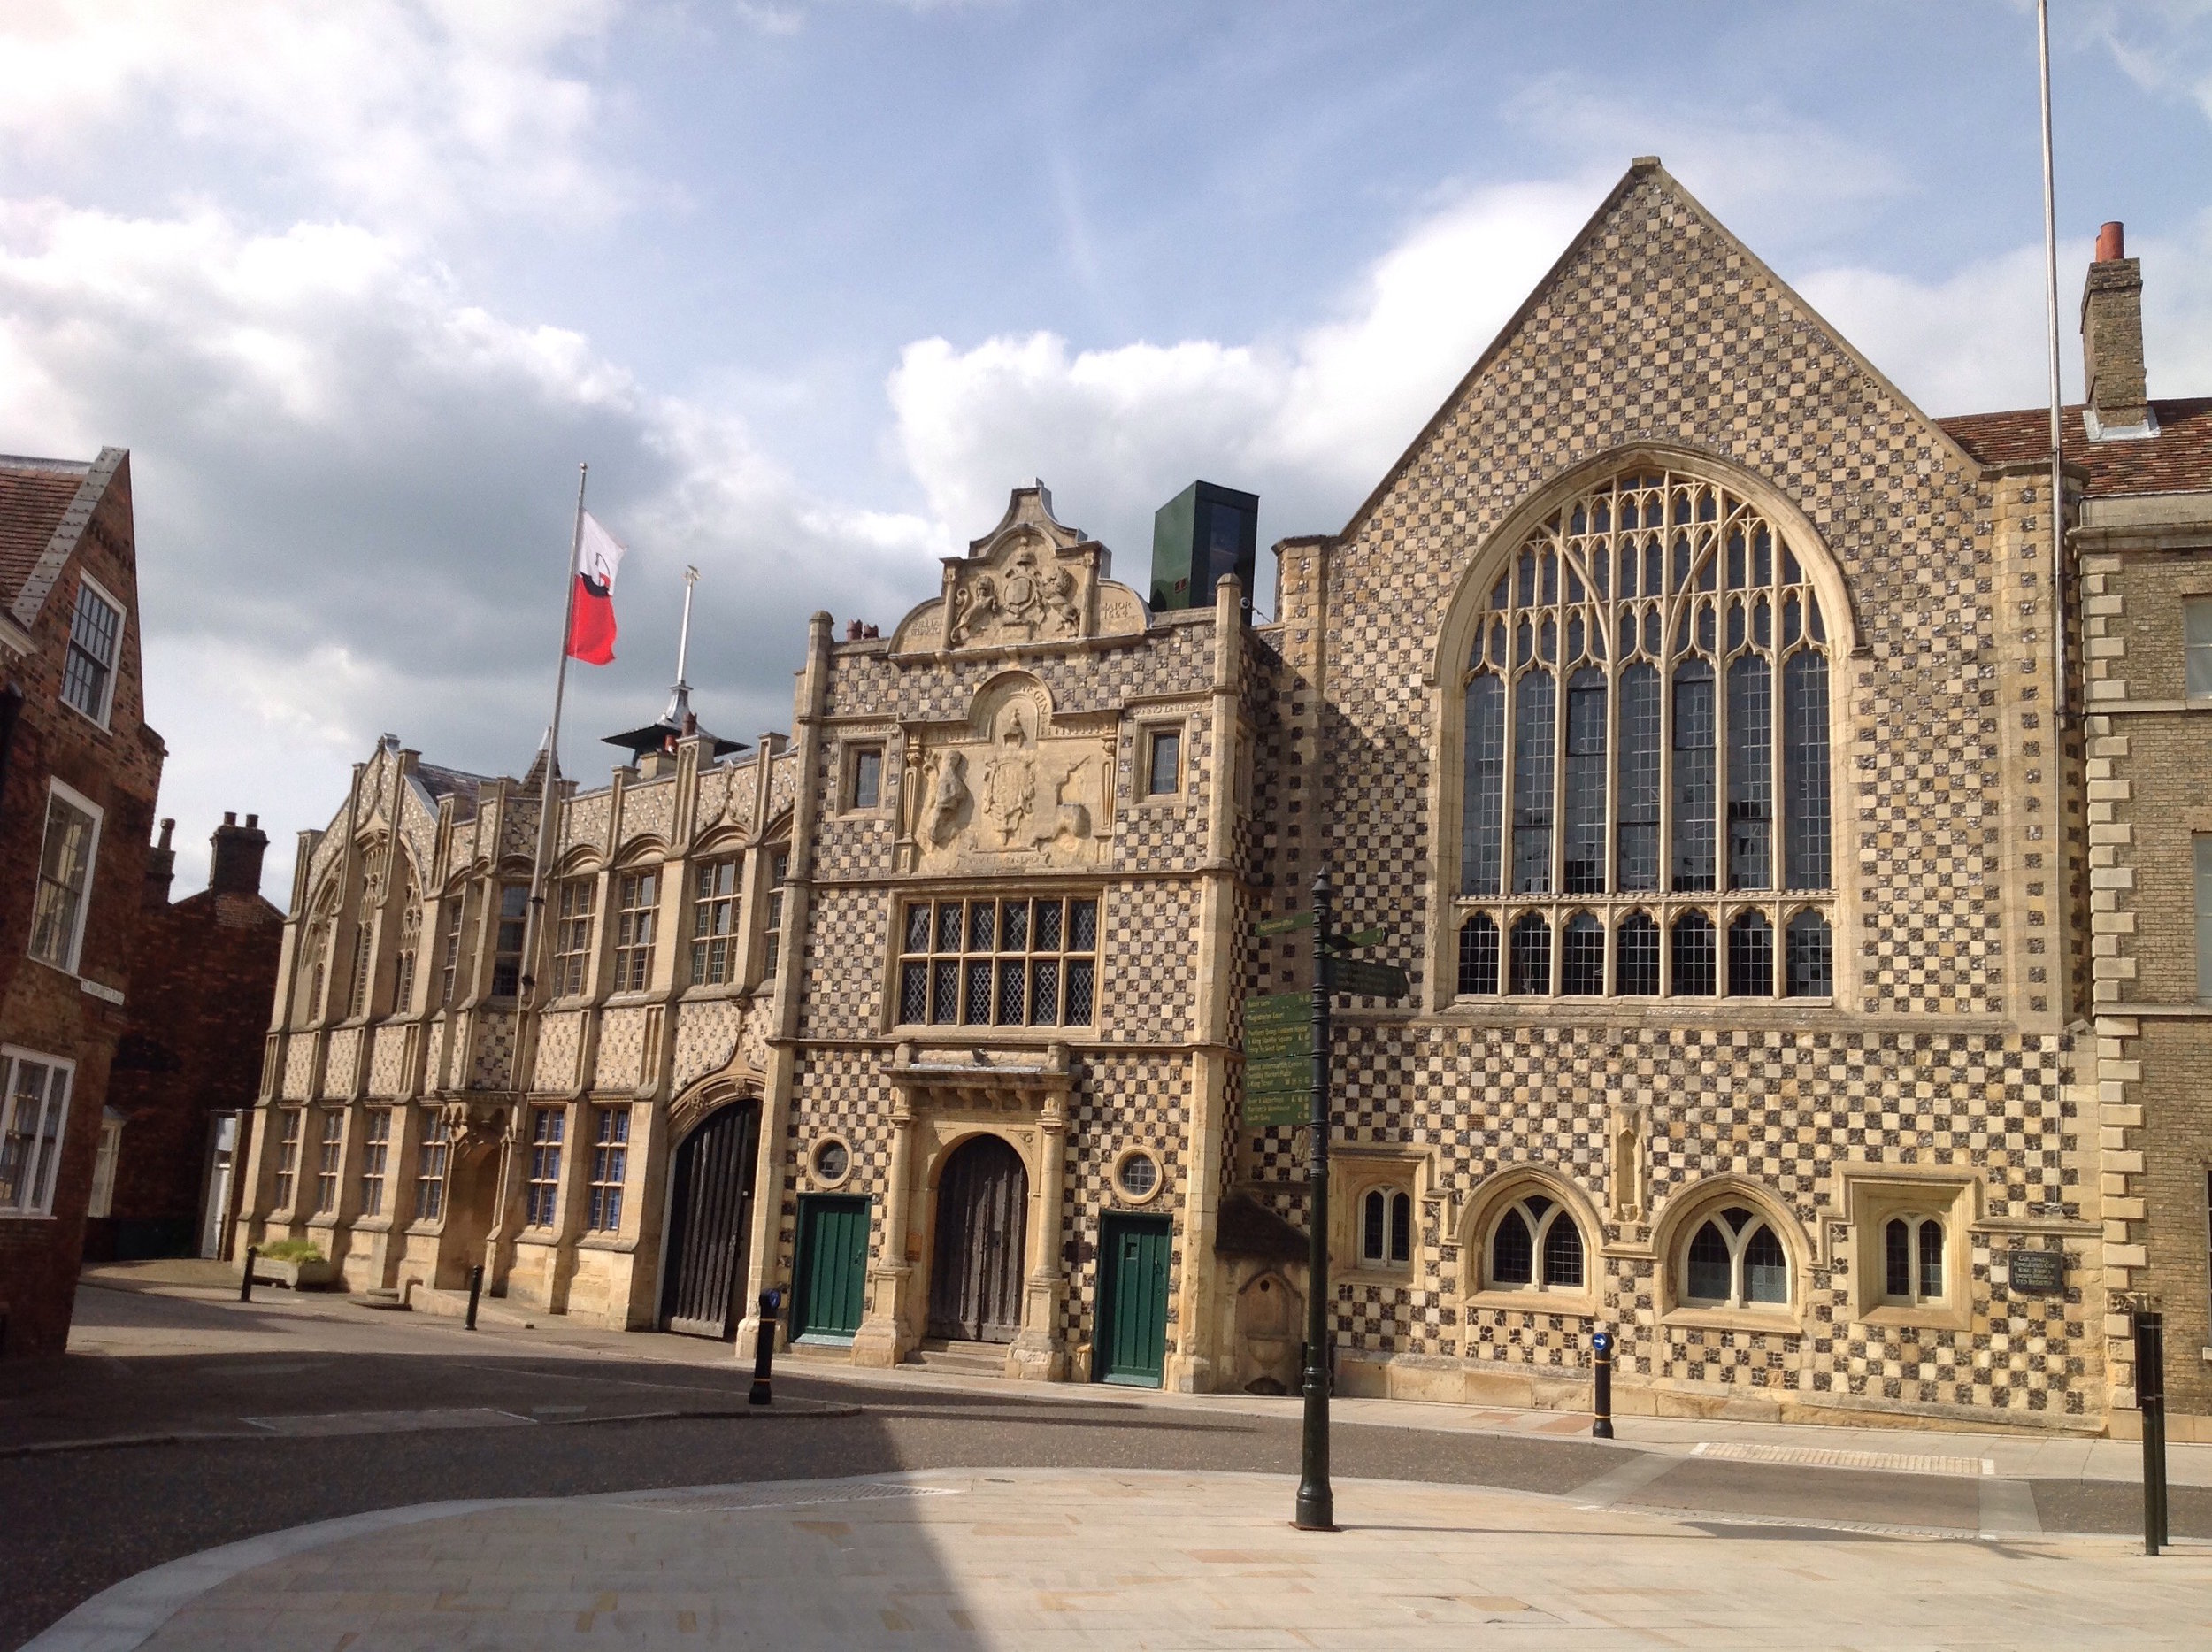 The Trinity Guildhall, now the Town Hall and home for one of King's Lynn's museums, Stories of Lynn, containing the town's treasure and some of the most remarkable archives to survive from any medieval town.